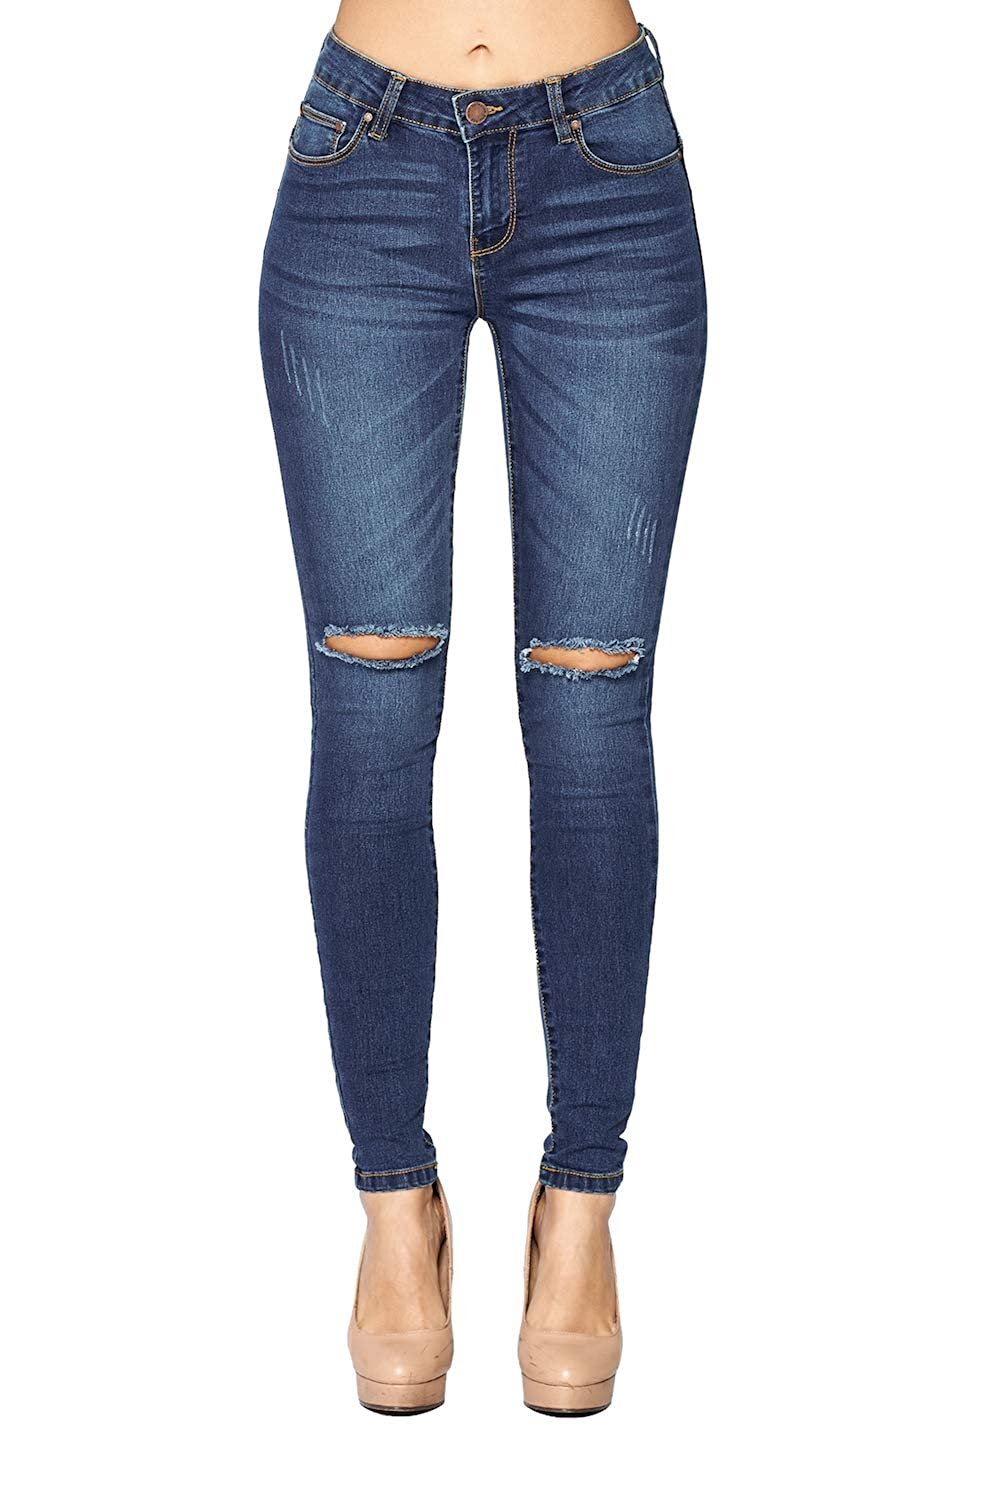 Jp1089_medium Wash bluee Age Women's ButtLifting Skinny Jeans